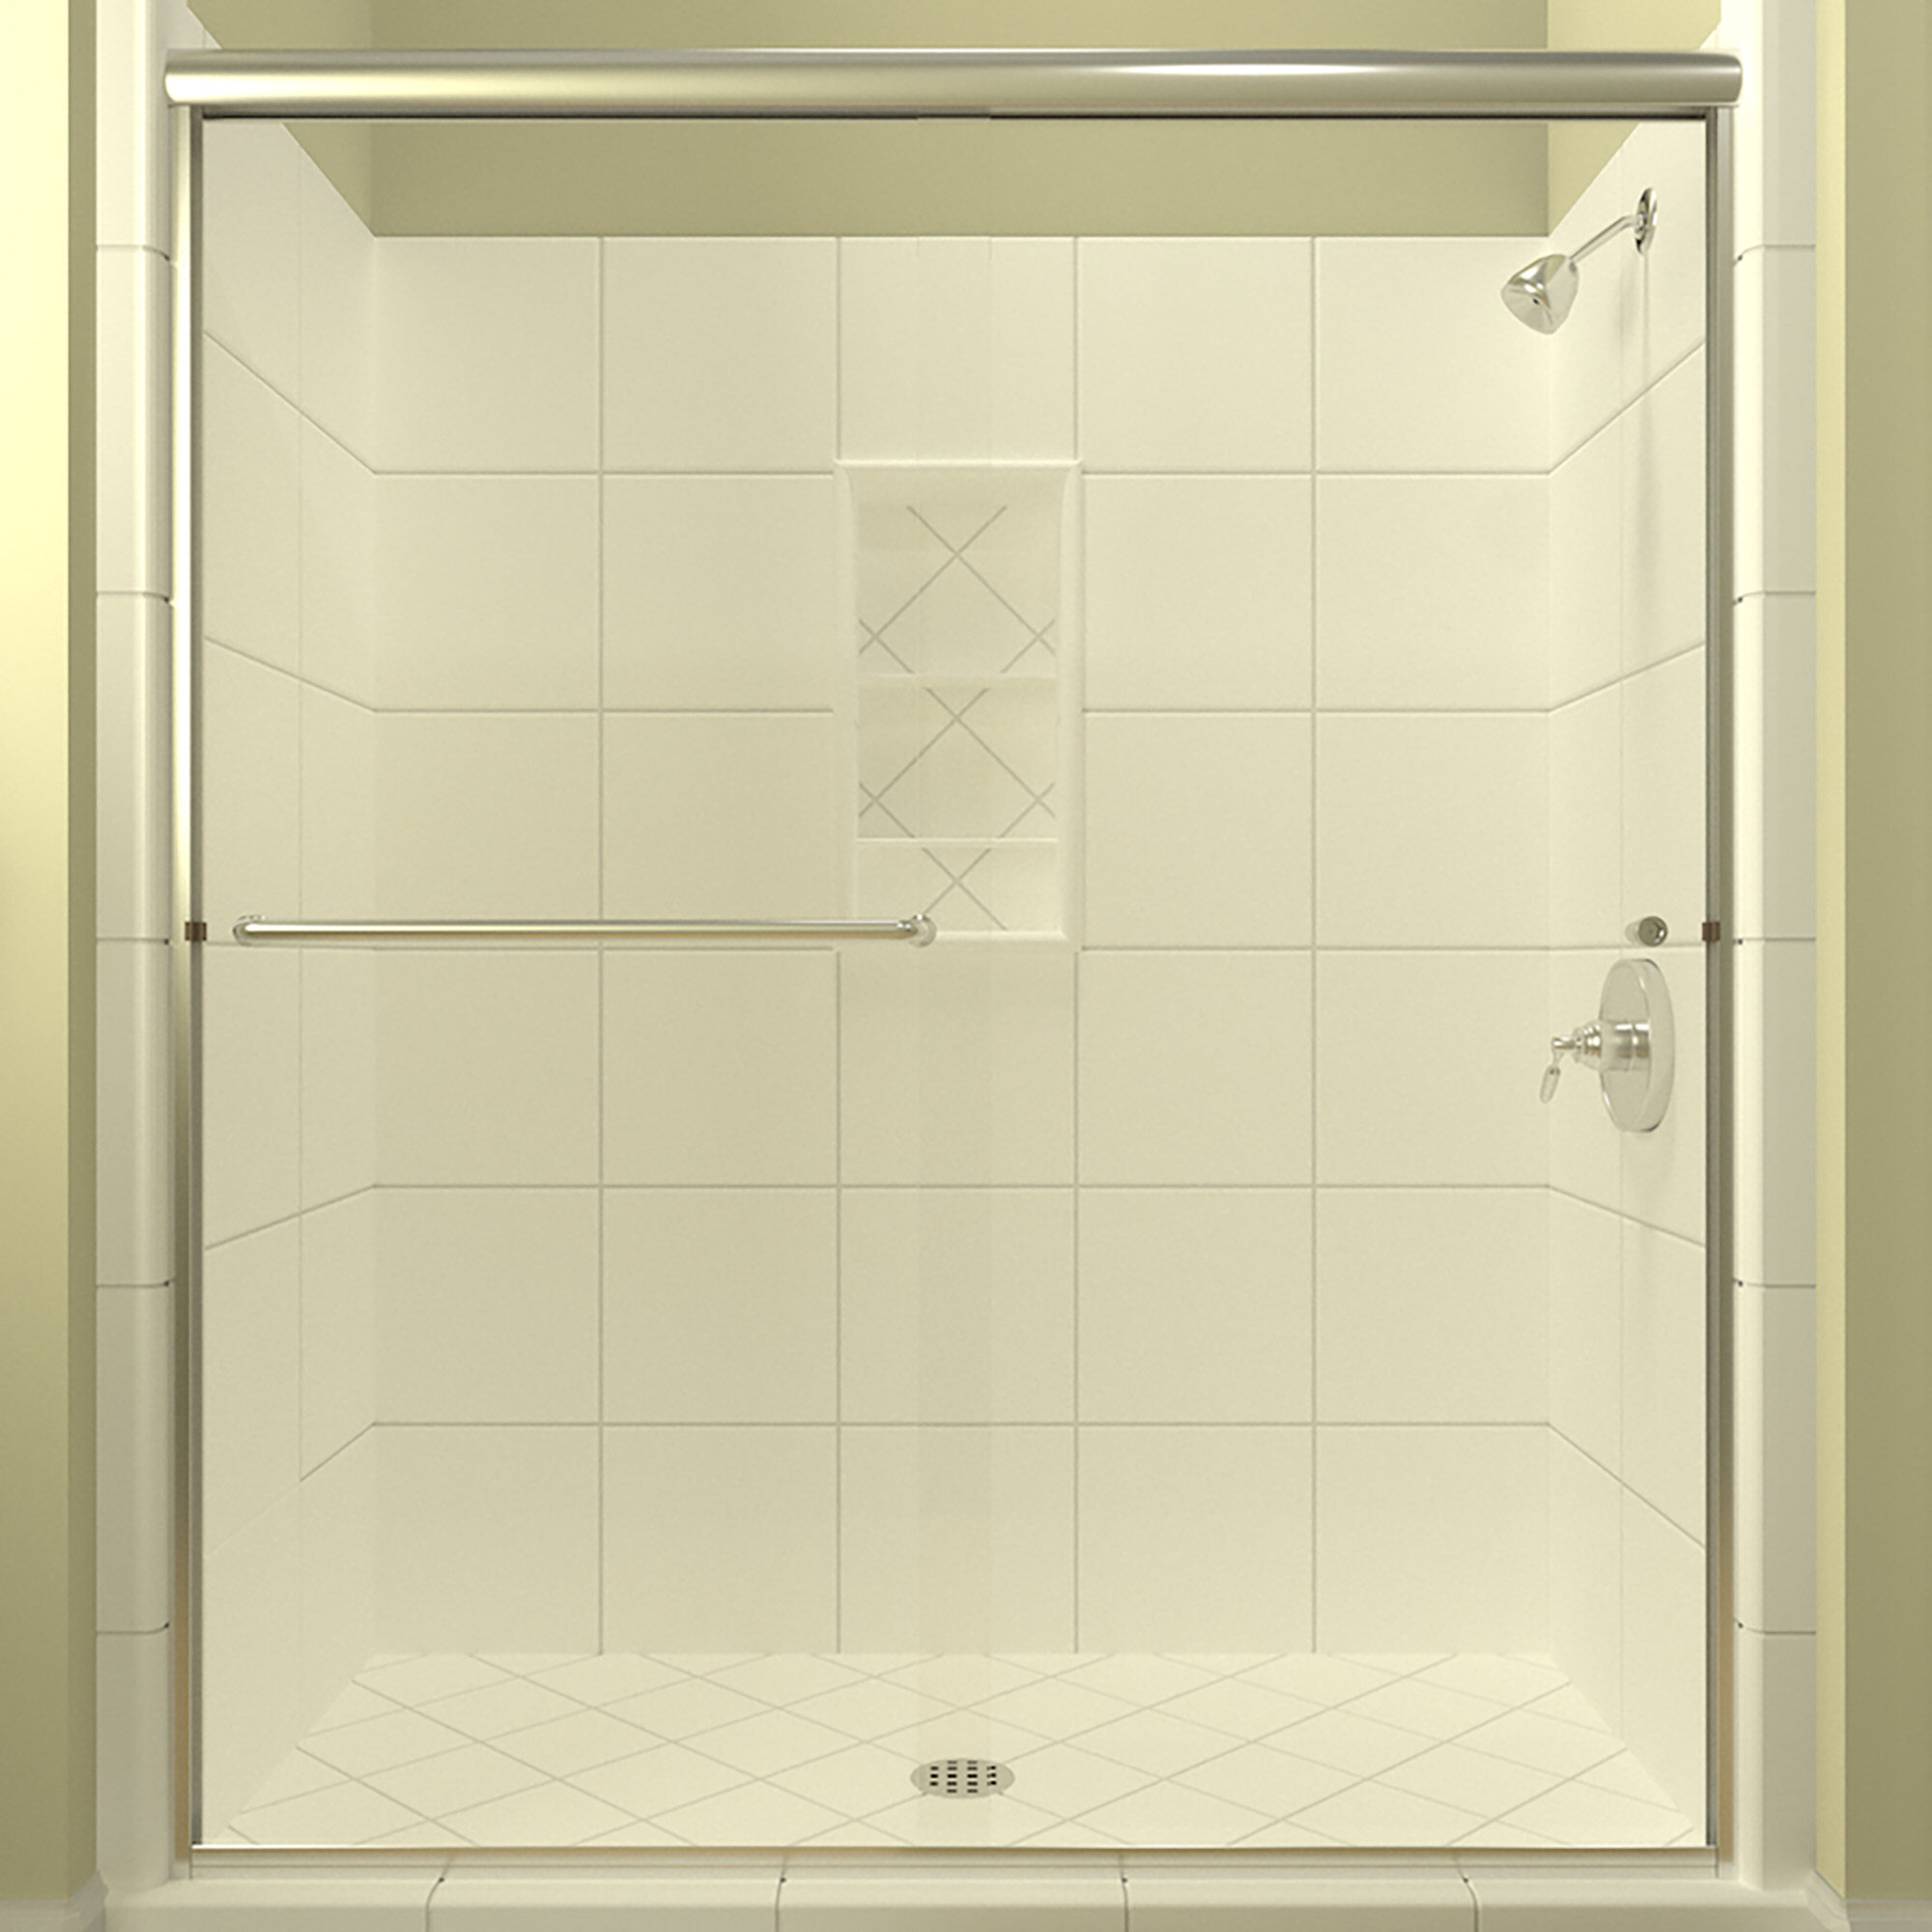 Details About Ese 66 X 70 38 Bypass Semi Frameless Shower Door Polished Chrome Left Opening